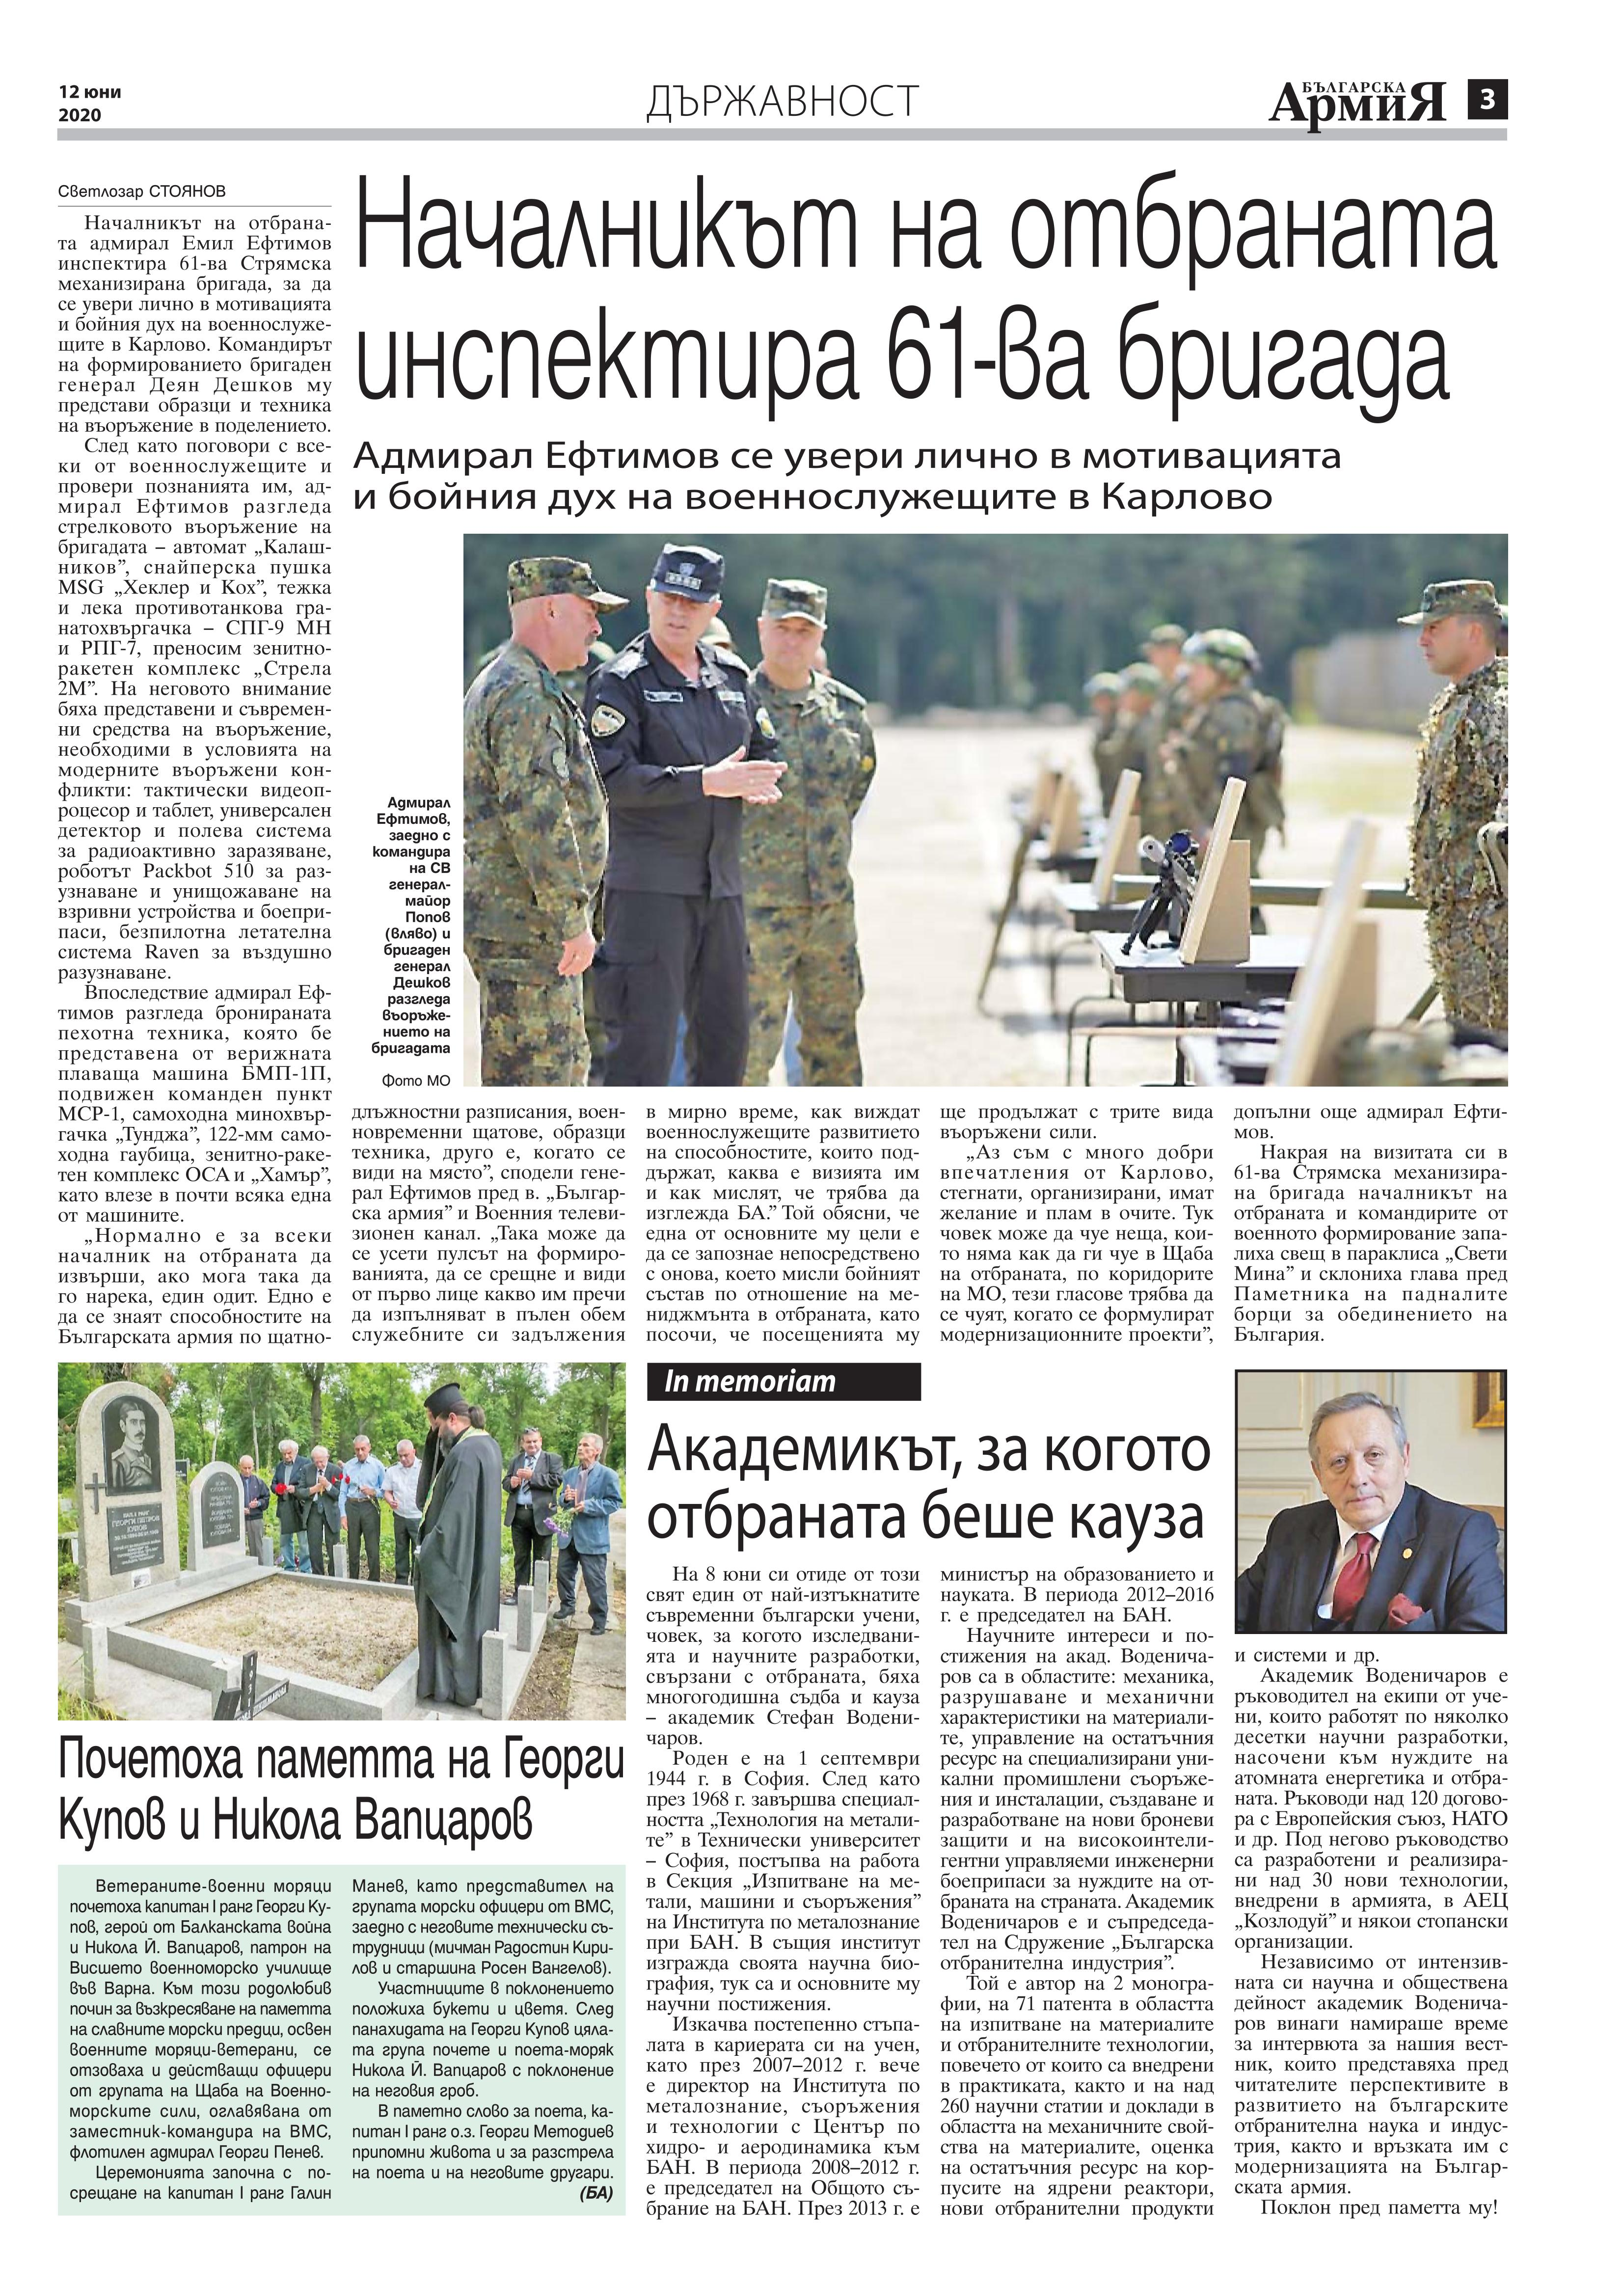 https://www.armymedia.bg/wp-content/uploads/2015/06/03.page1_-140.jpg